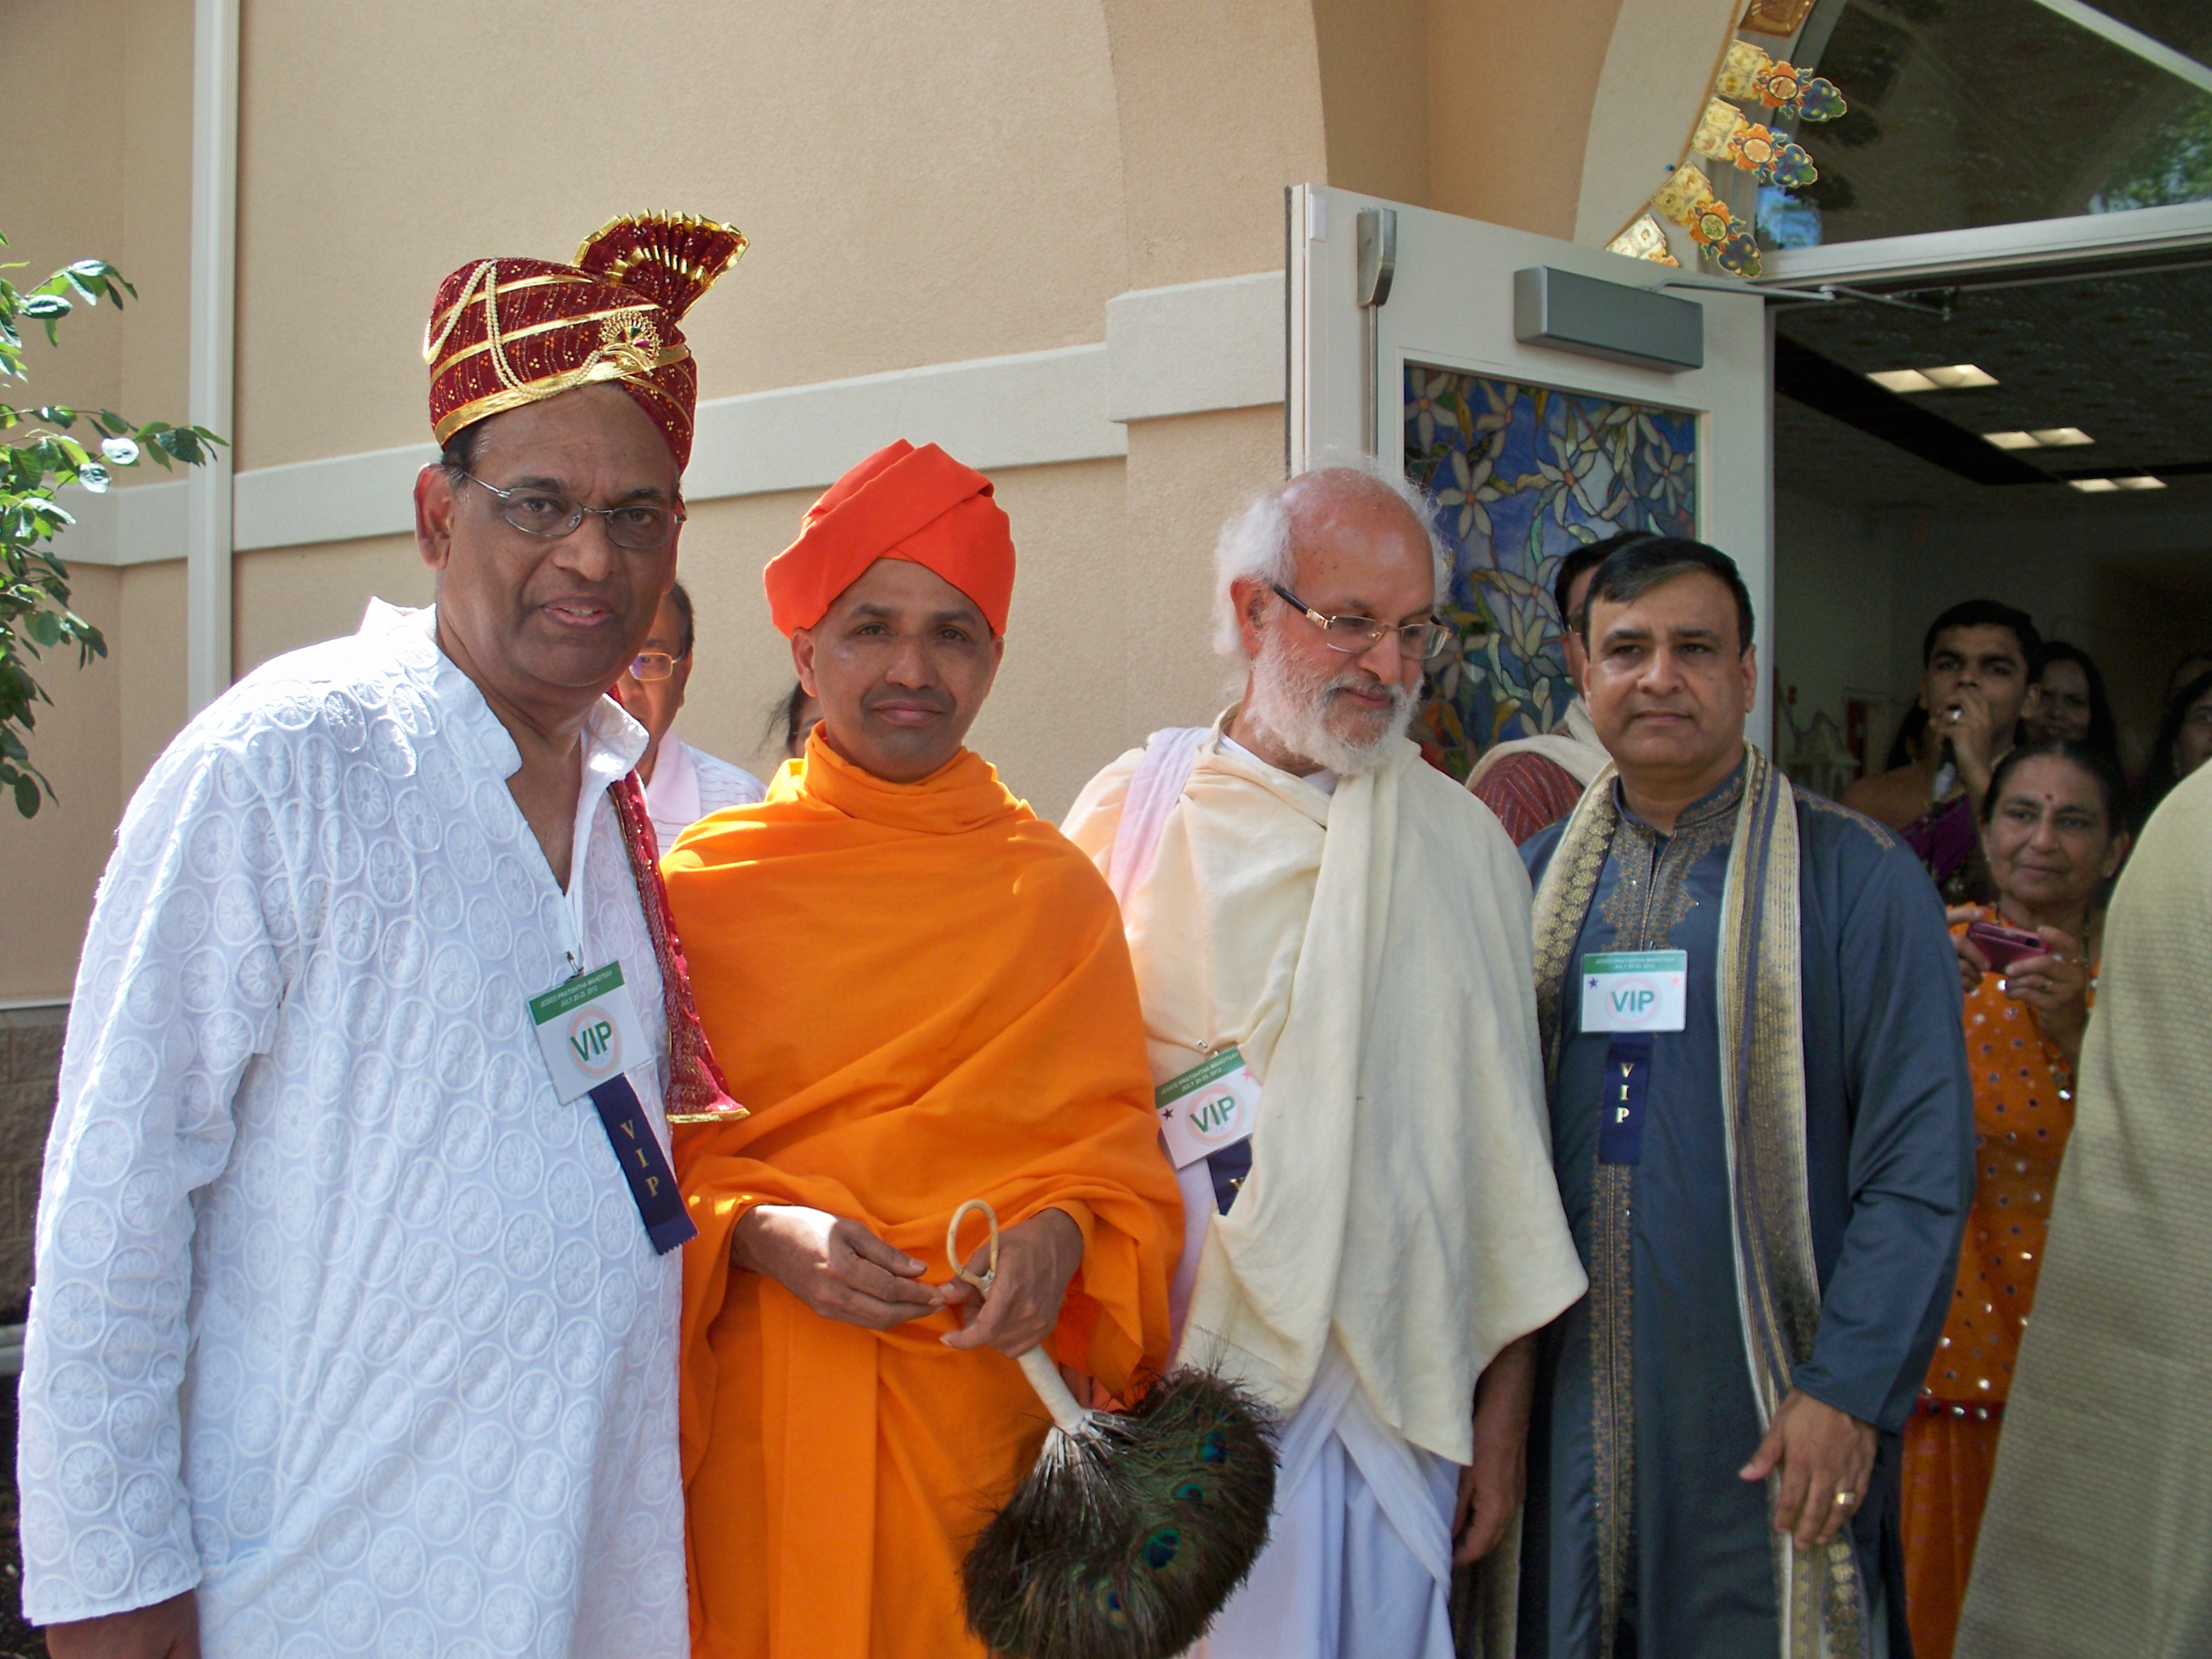 http://www.herenow4u.net/fileadmin/v3media/pics/organisations/Jain_Center_of_Central_Ohio/PRATISHTHA_MAHOTSAV/JCOCO_JAIN_TEMPLE_PRATISHTHA_01.jpg